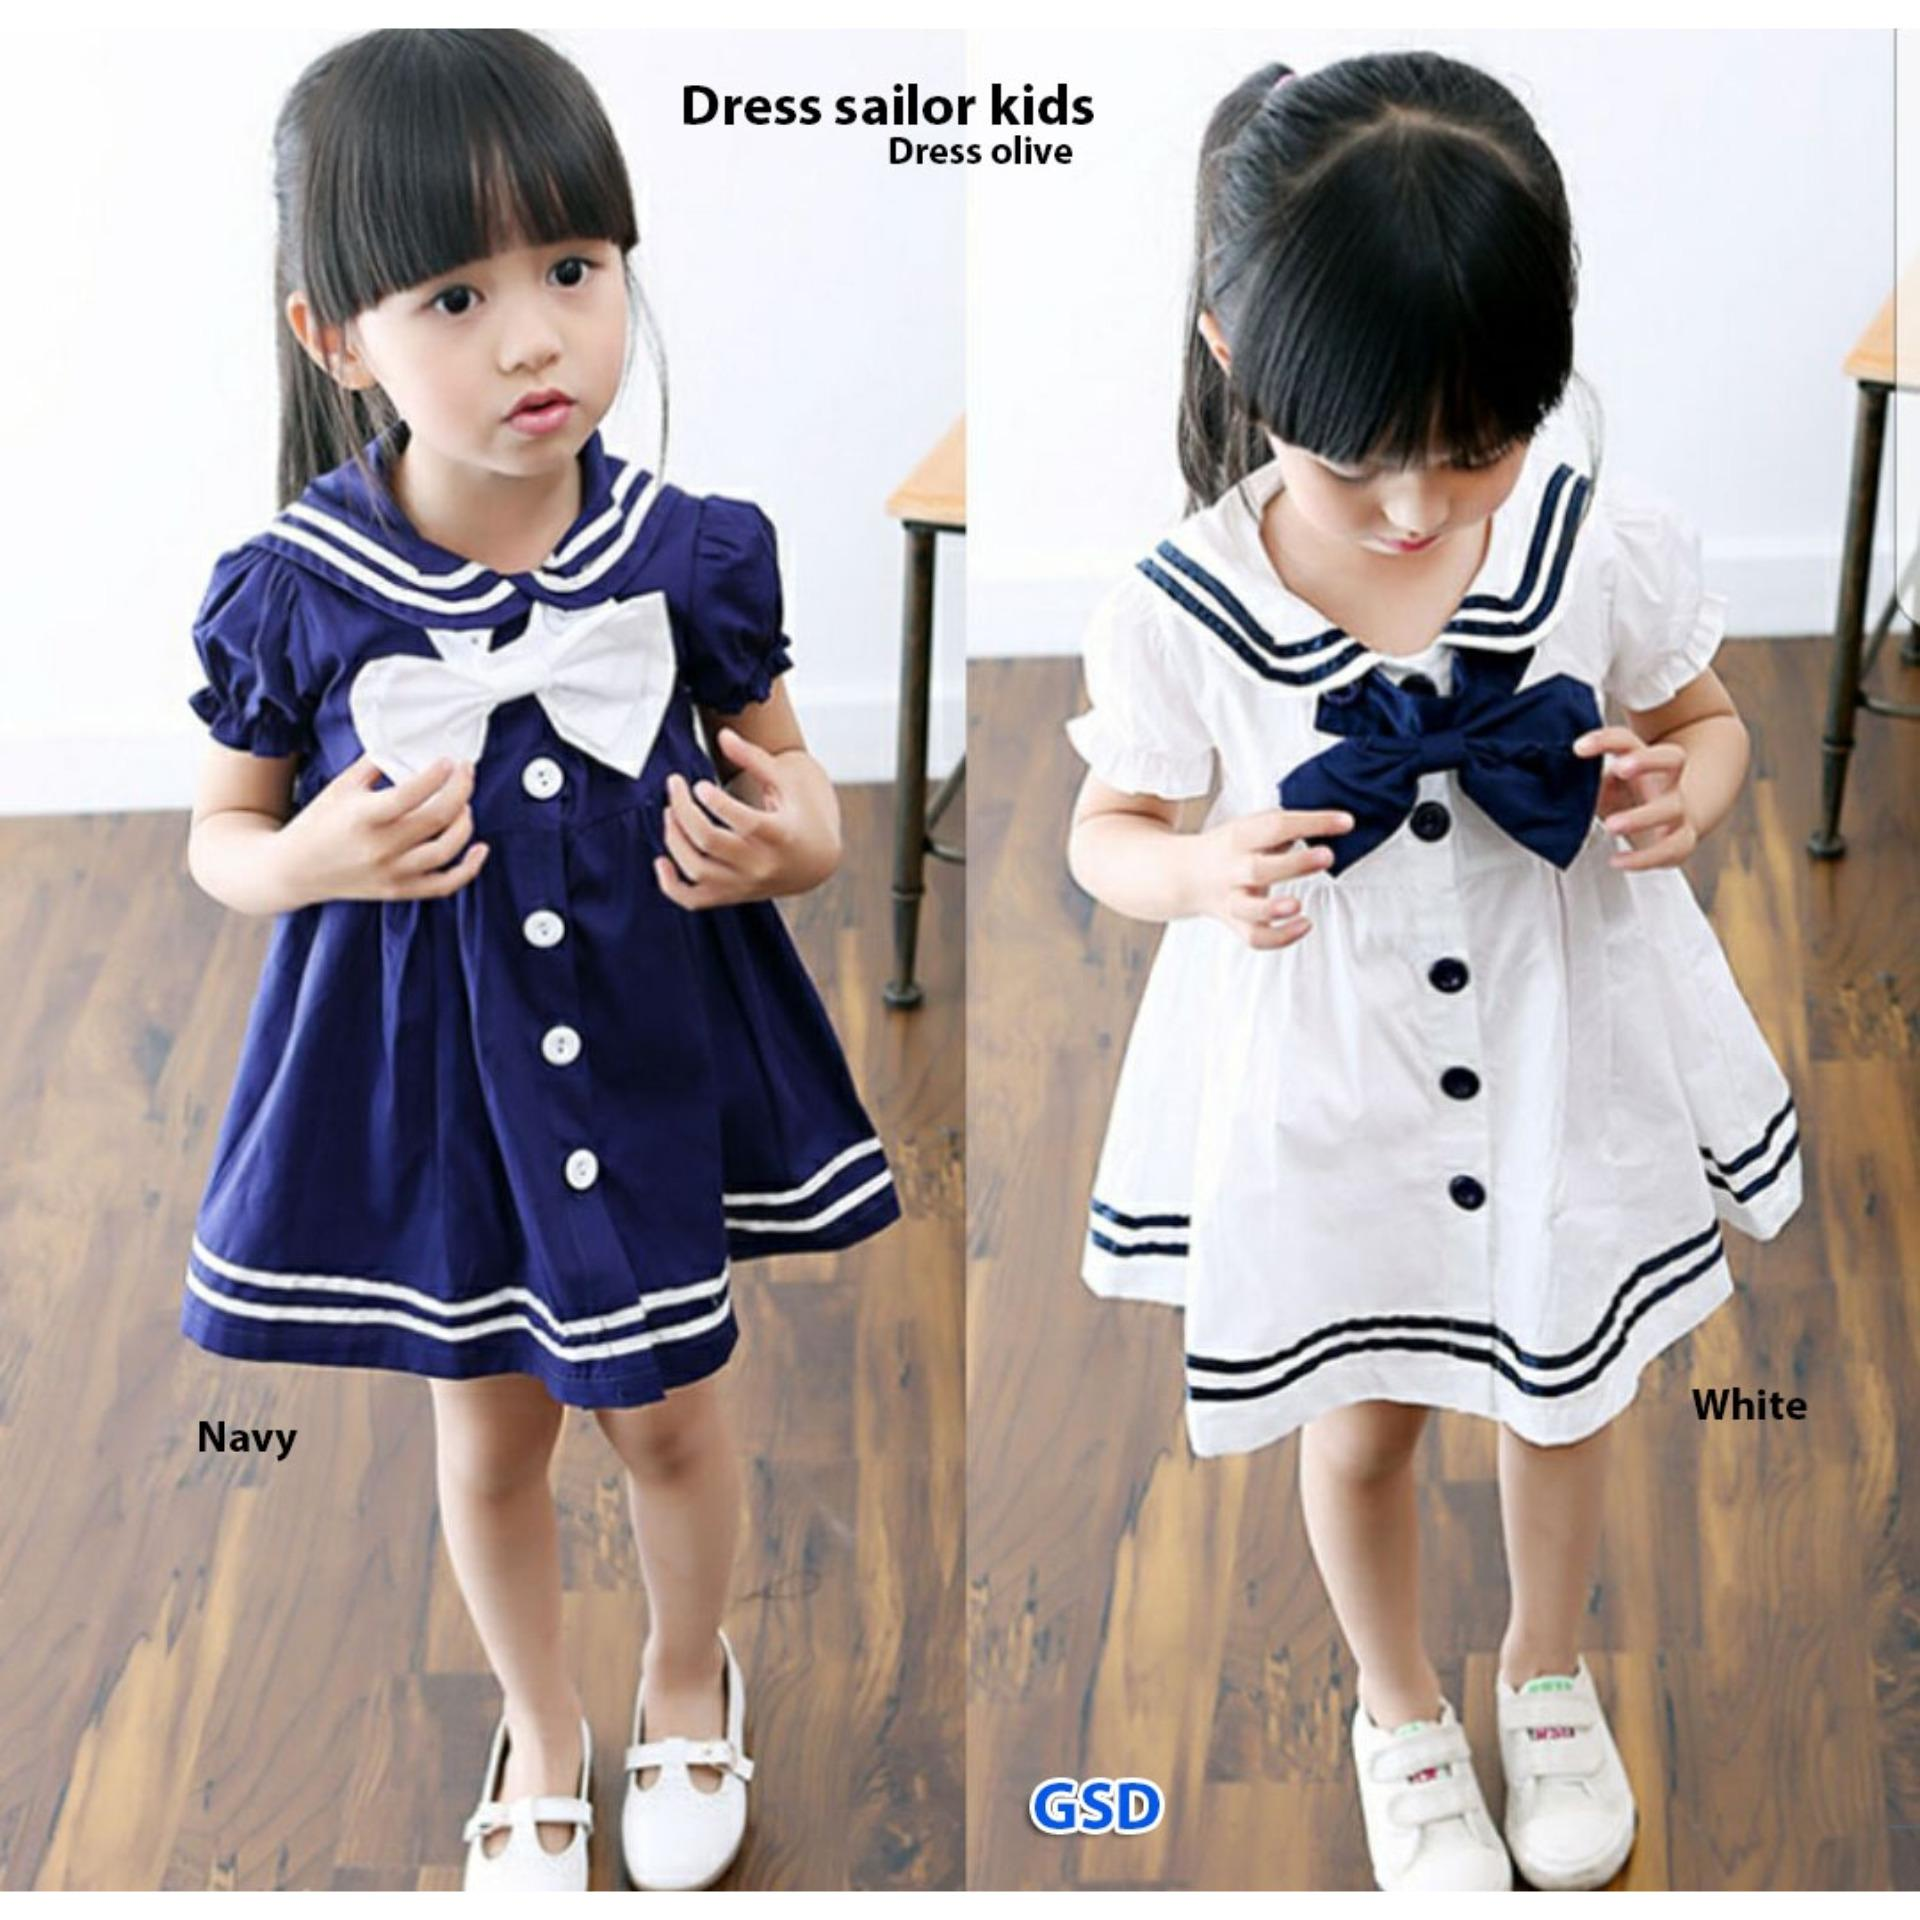 NCR-Dress Anak Dress Olive